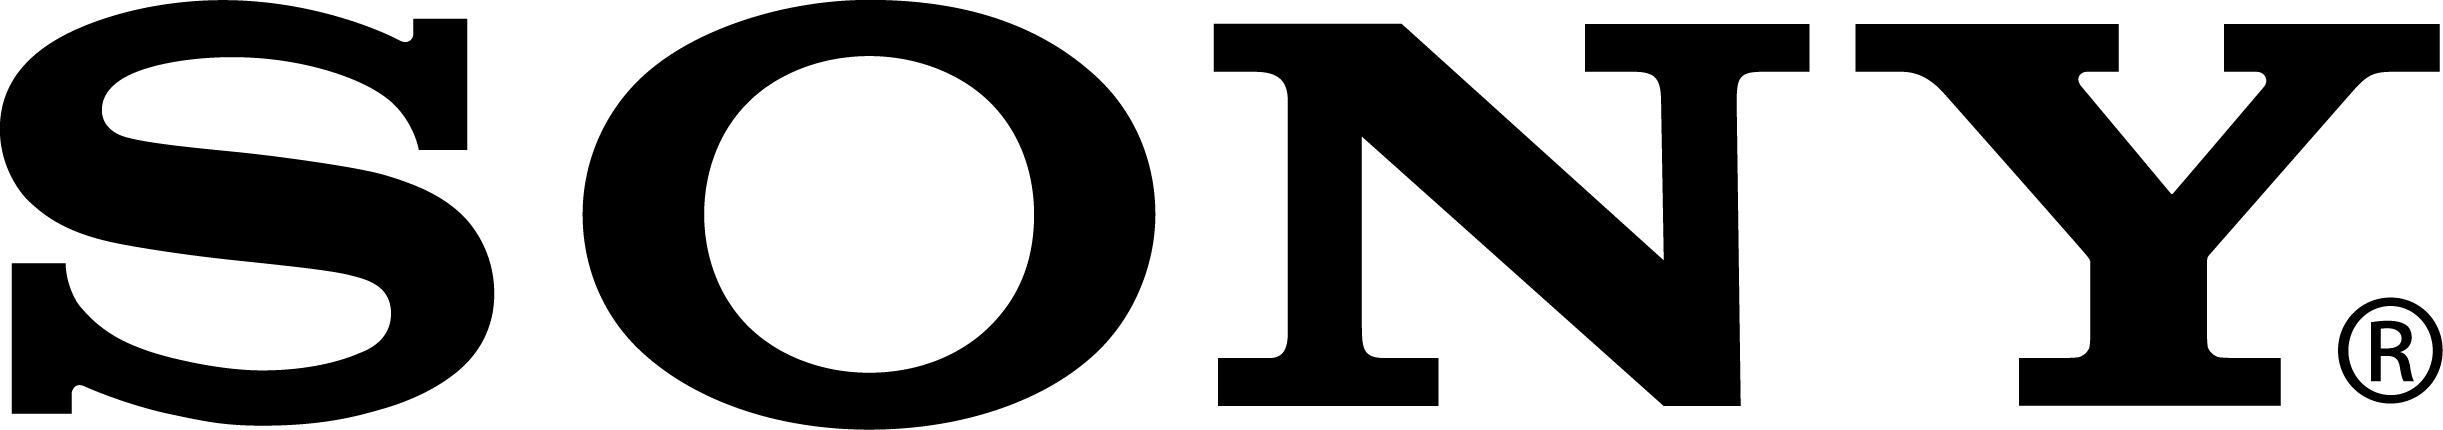 Sony_Corporate_Logo_in_black.png